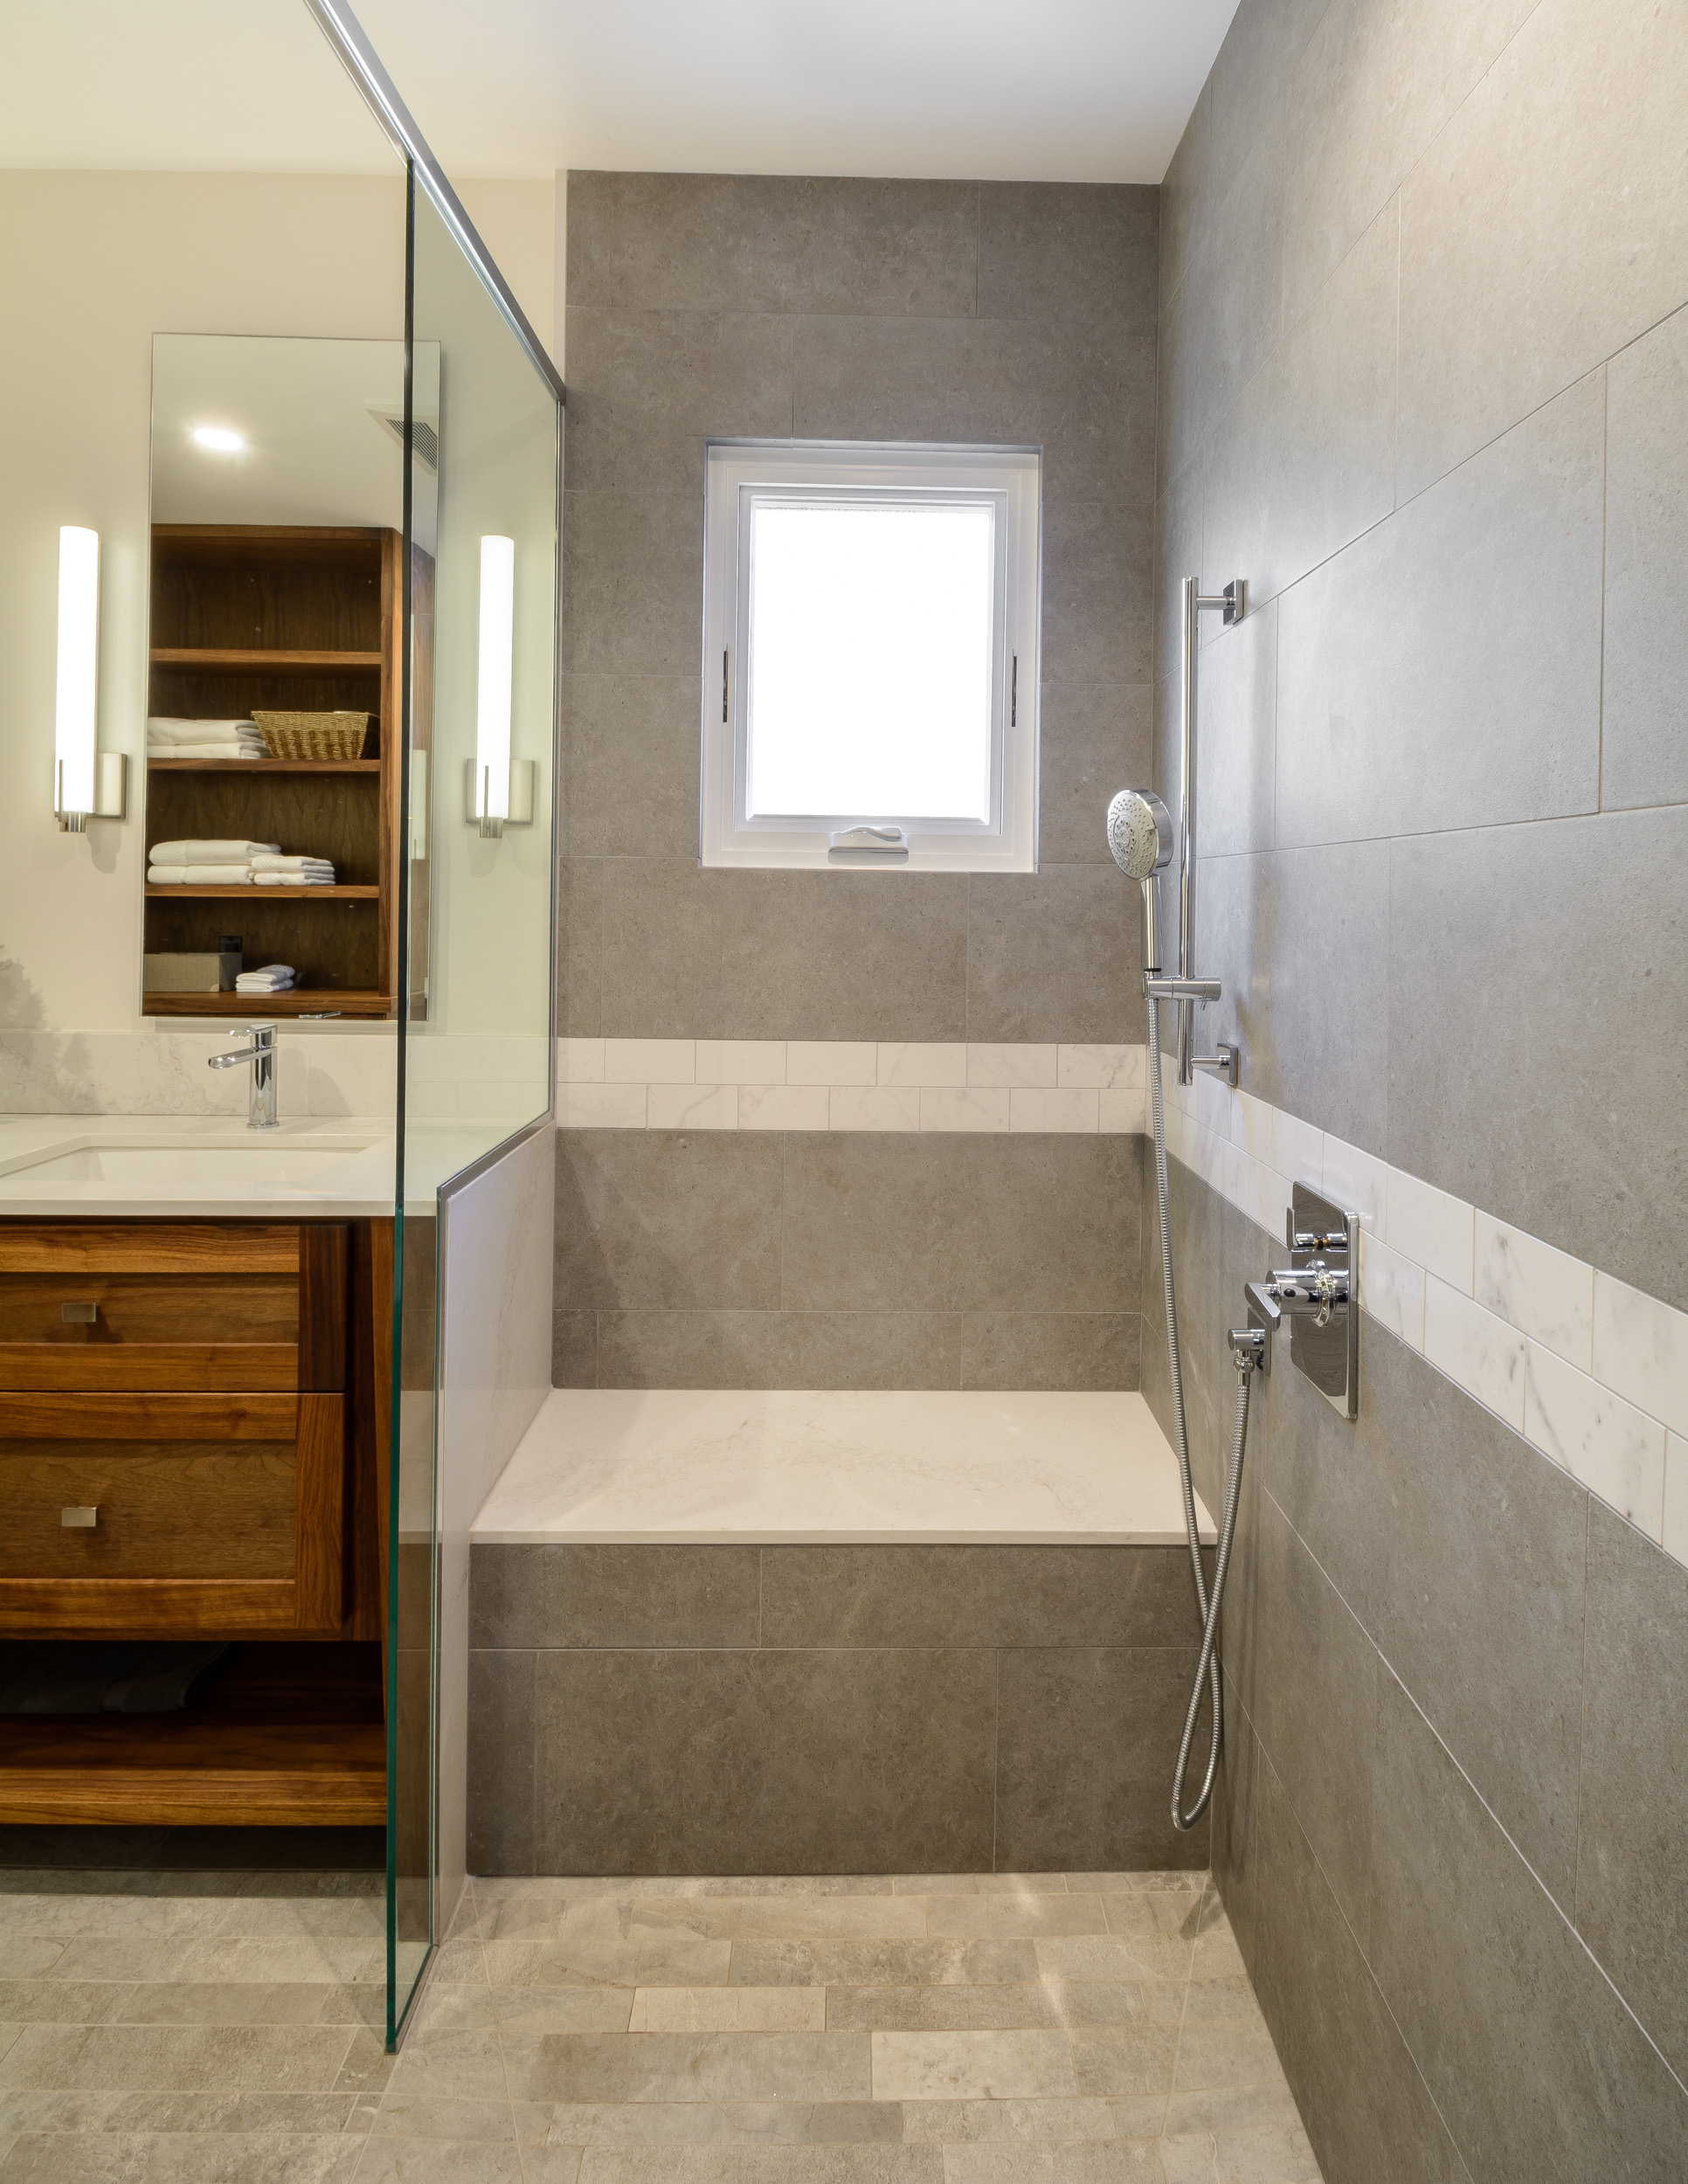 Shower seat with warming feature, small casement window for natural light, hand held shower fixture and custom walnut vanity